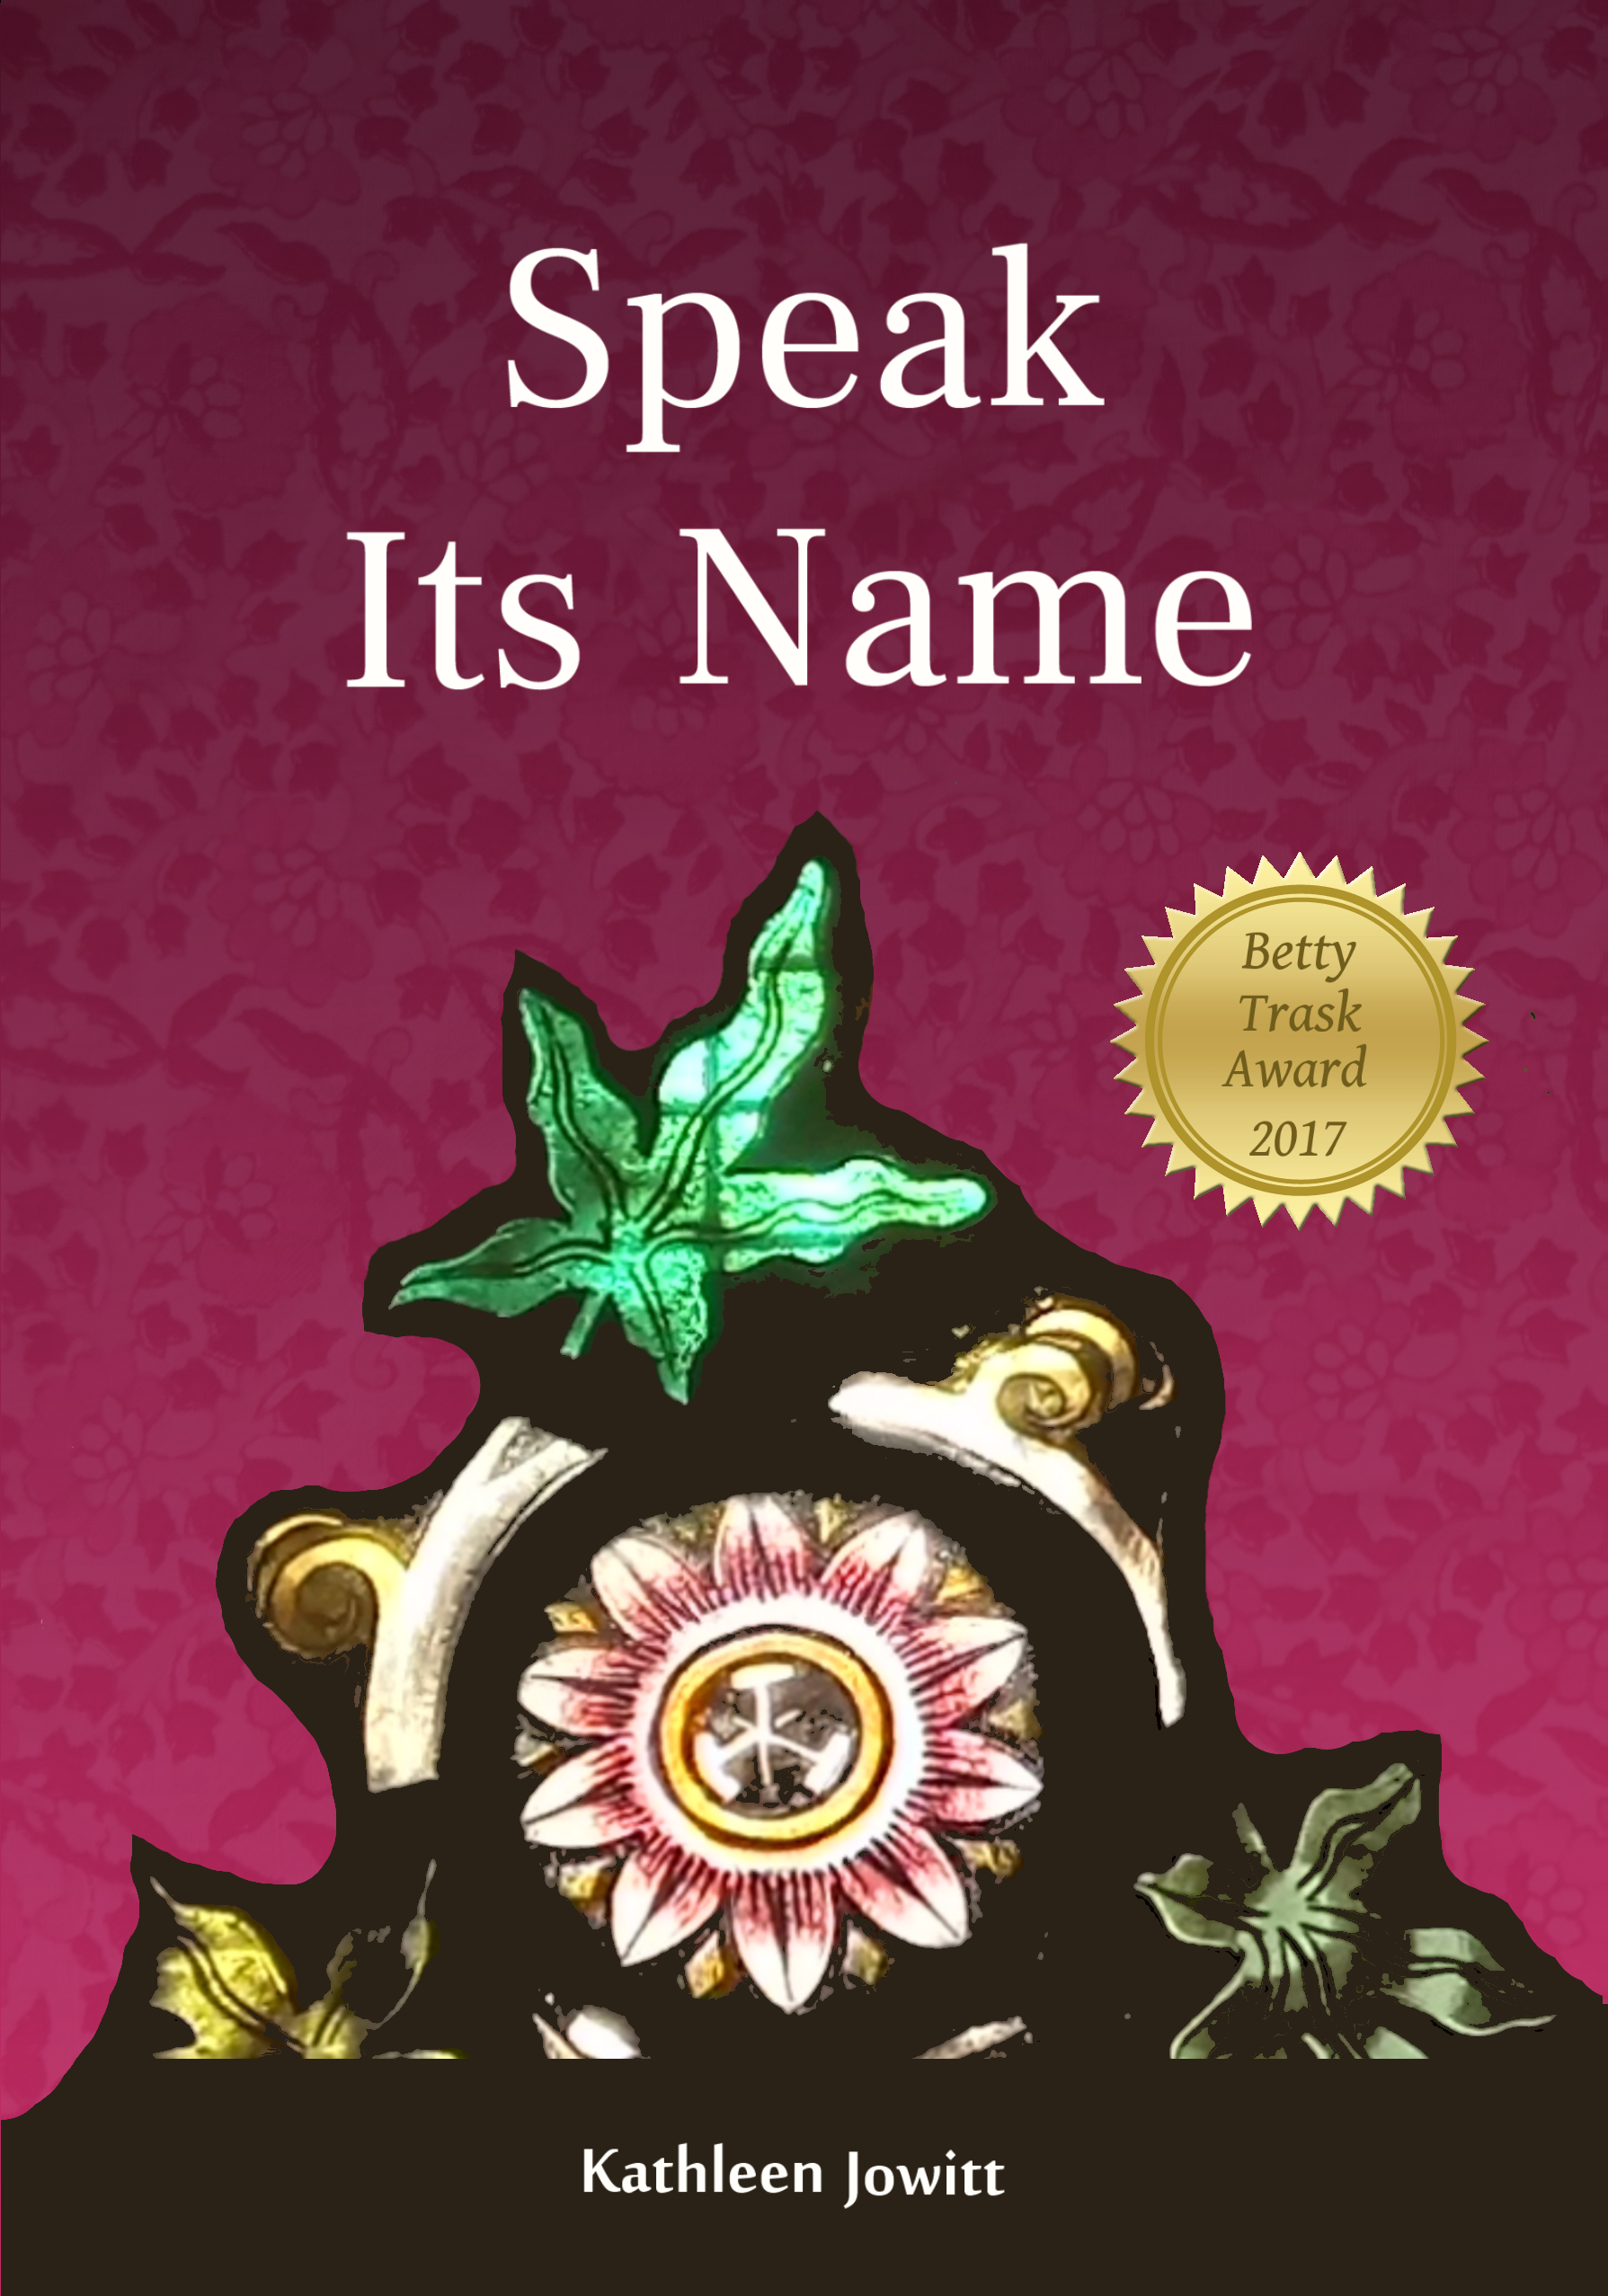 speak-its-name-front-cover-2020-2